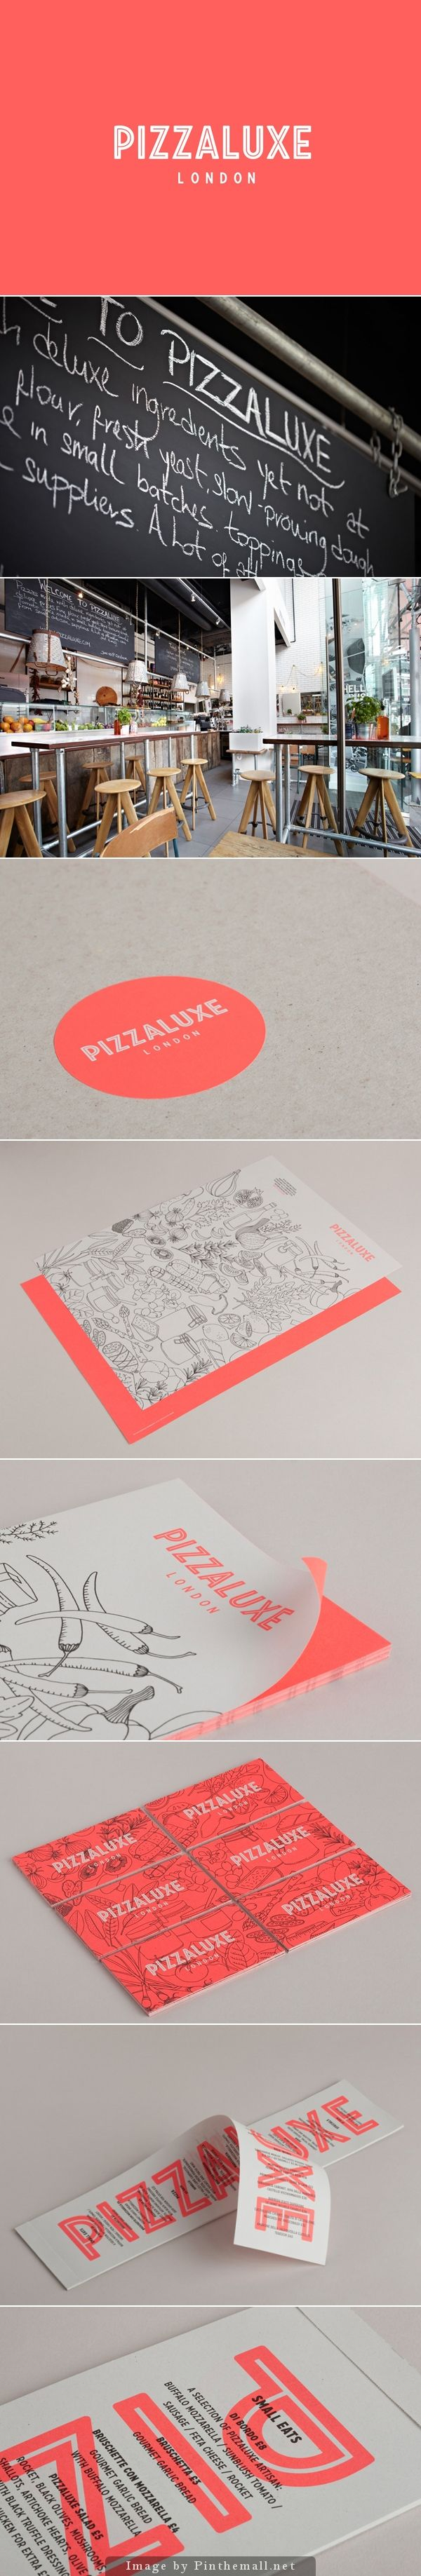 Pizza Luxe designed by Touch #branding #Identity